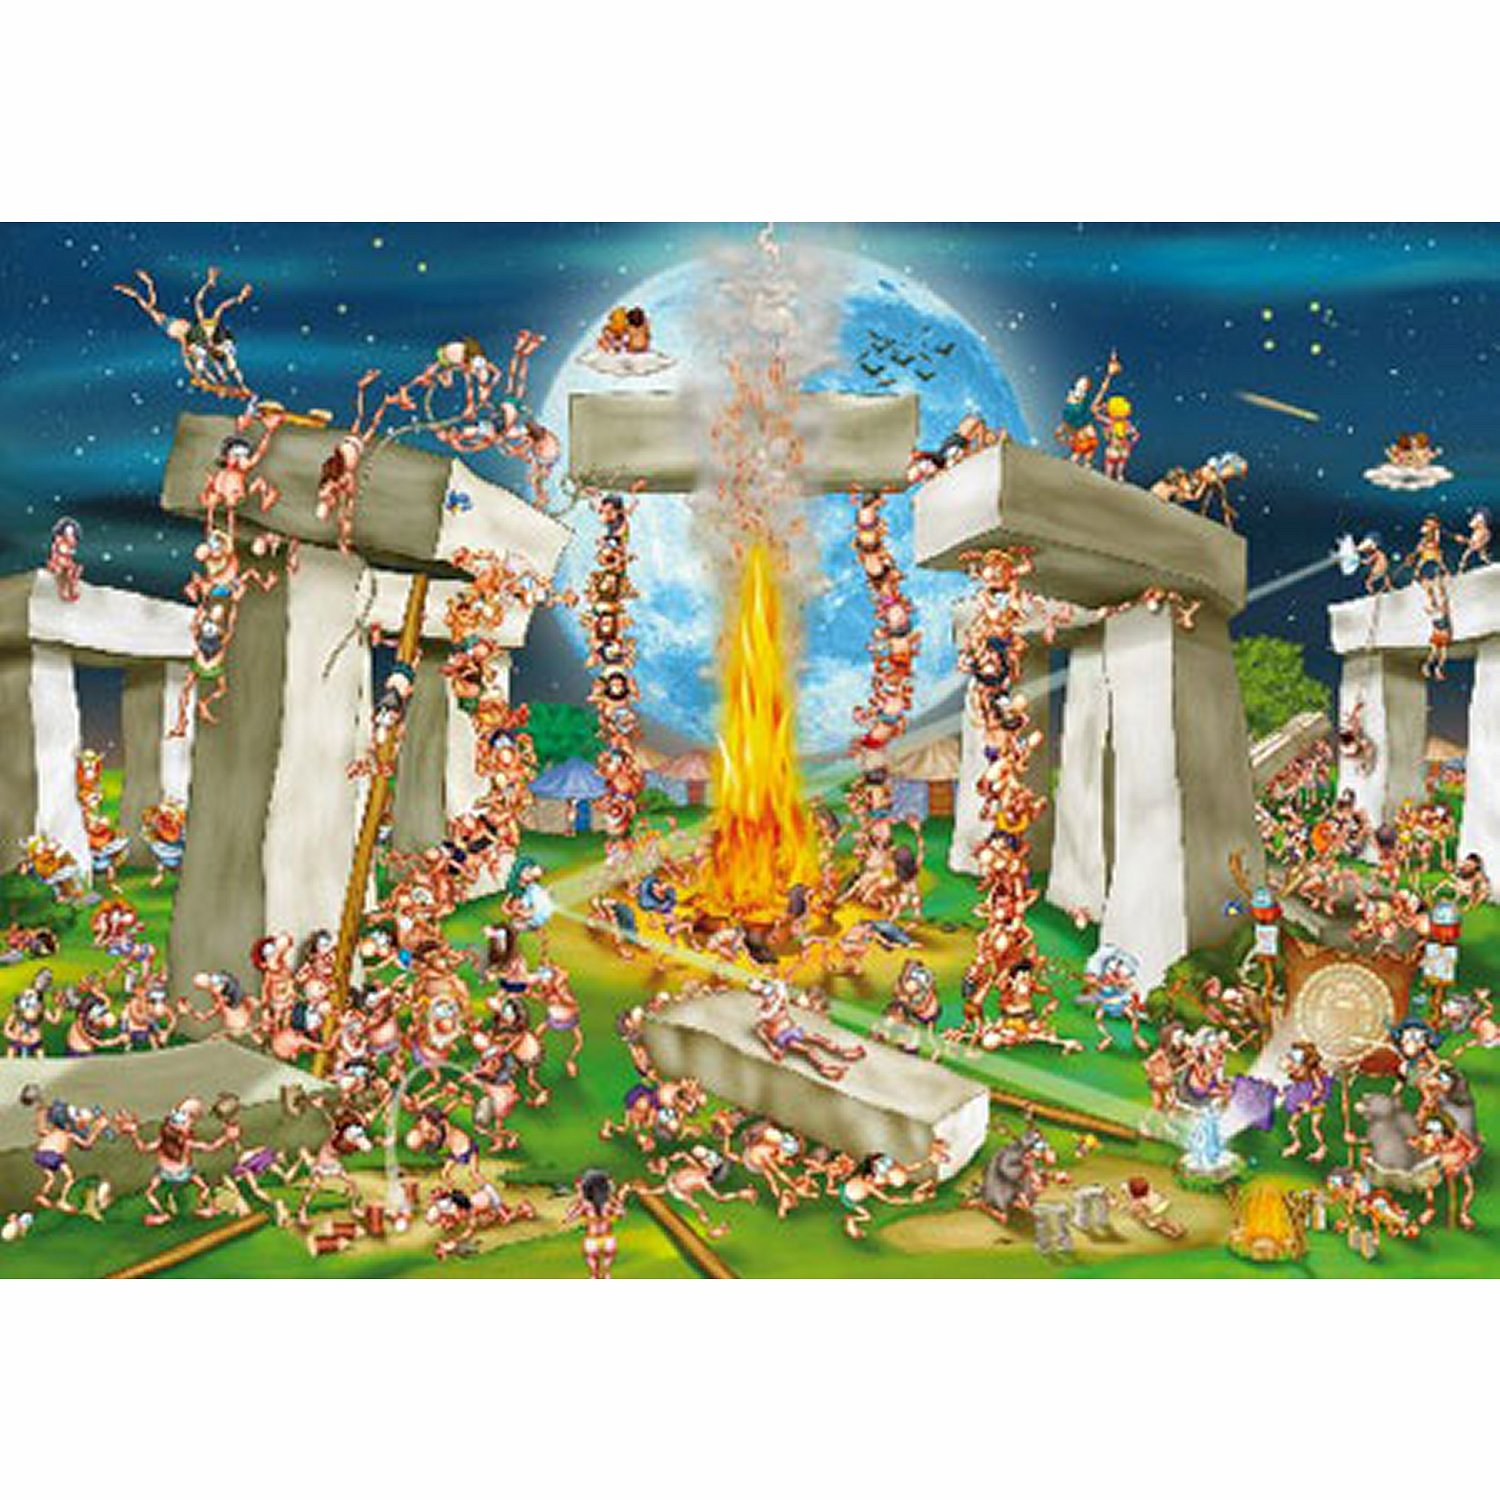 dtoys-cartoon-collection-stonehenge-1000-teile-puzzle-dtoys-70906